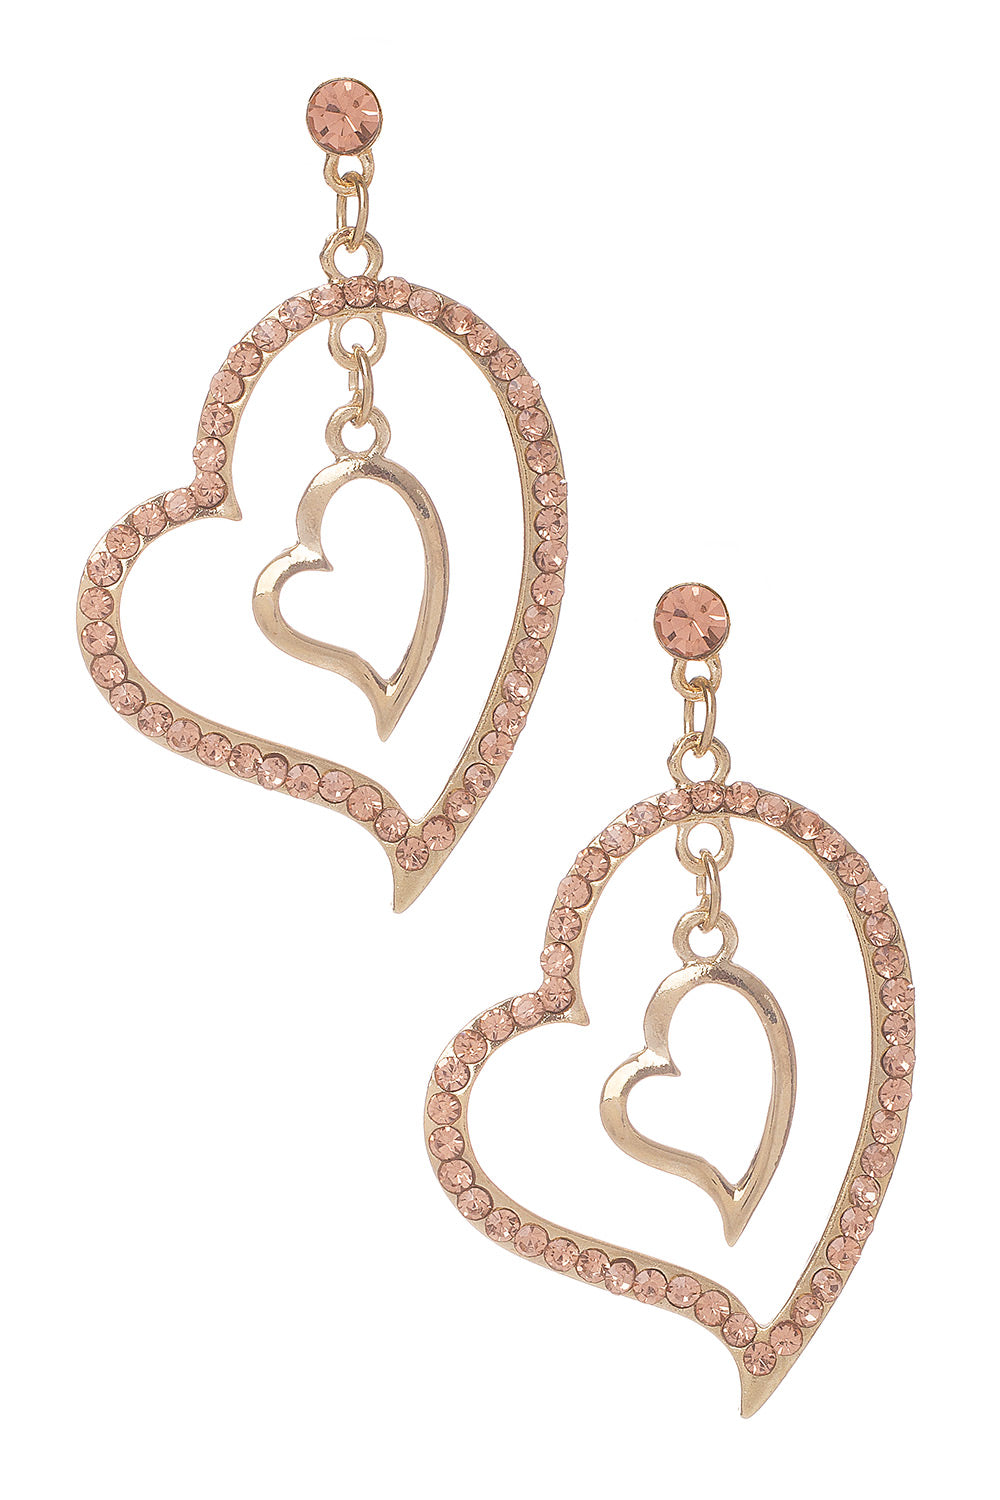 Type 1 Heartthrob Earrings